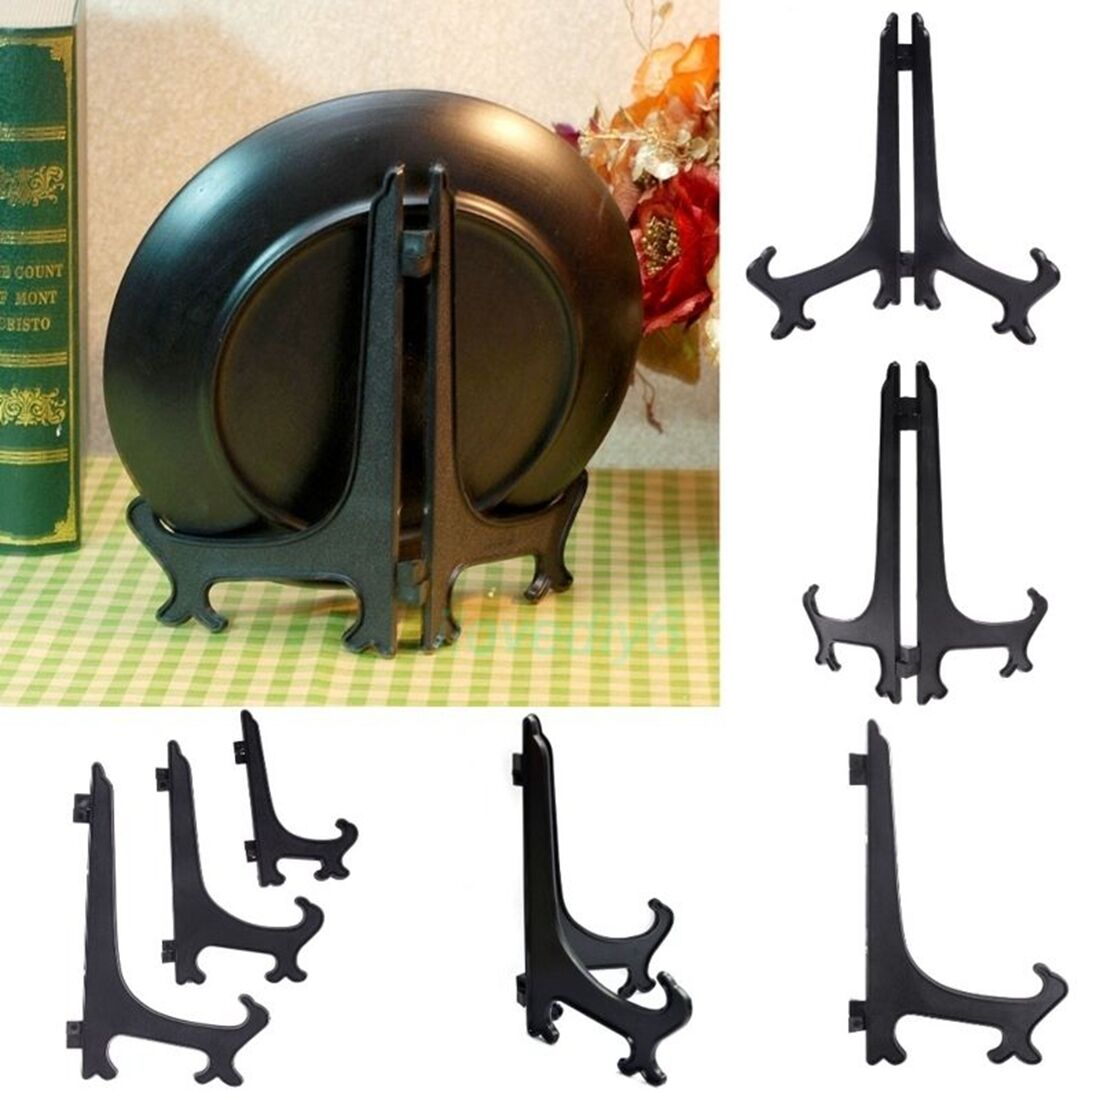 Arresting 5pc Hot 3 5 7 9 Easel Stand Plate Pedestal Plate Display Stands South Africa Plate Display Stands Ikea houzz 01 Plate Display Stands